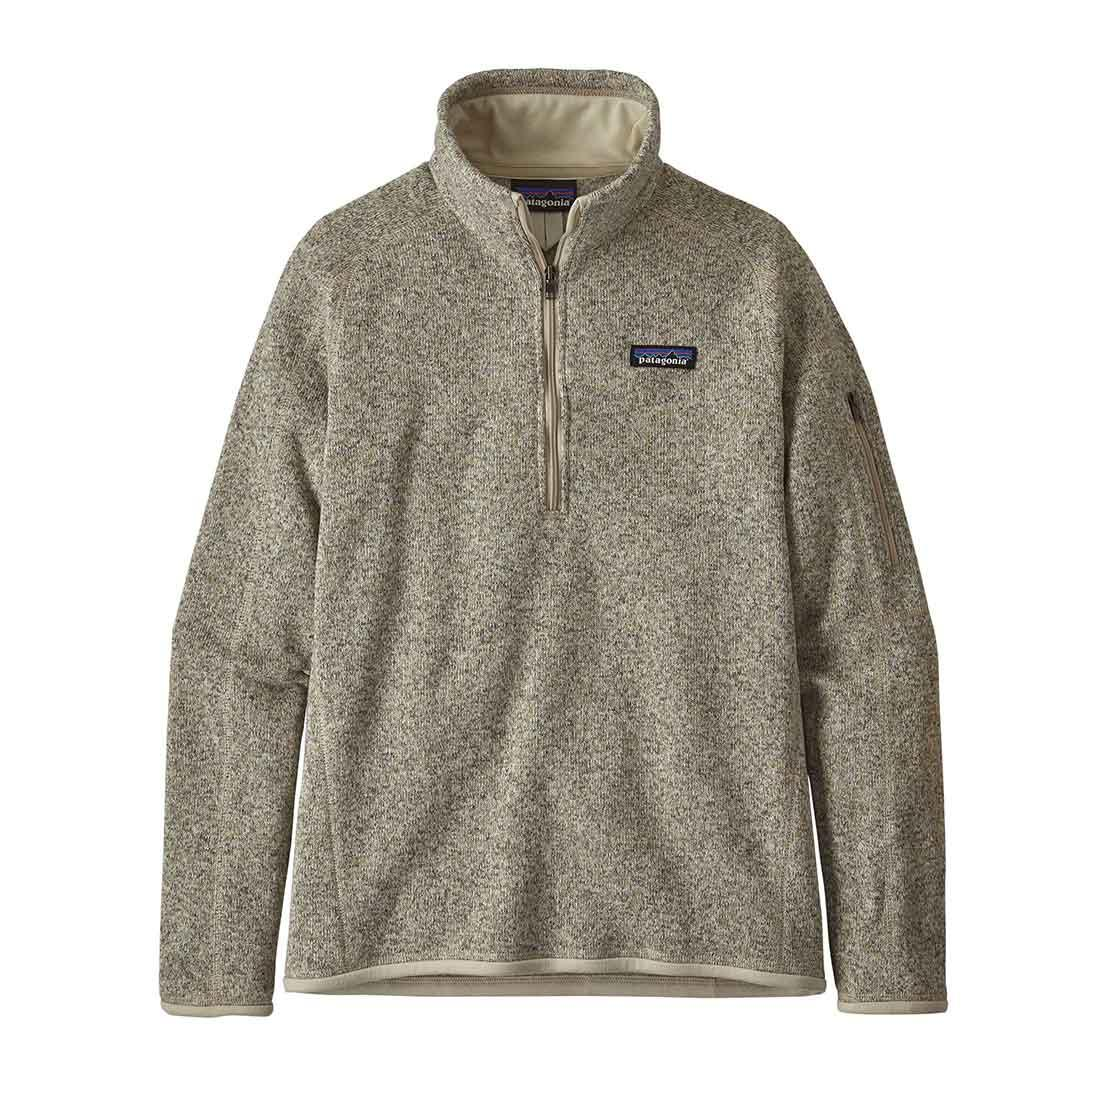 Patagonia Women's Better Sweater 1/4 Zip - Pelican